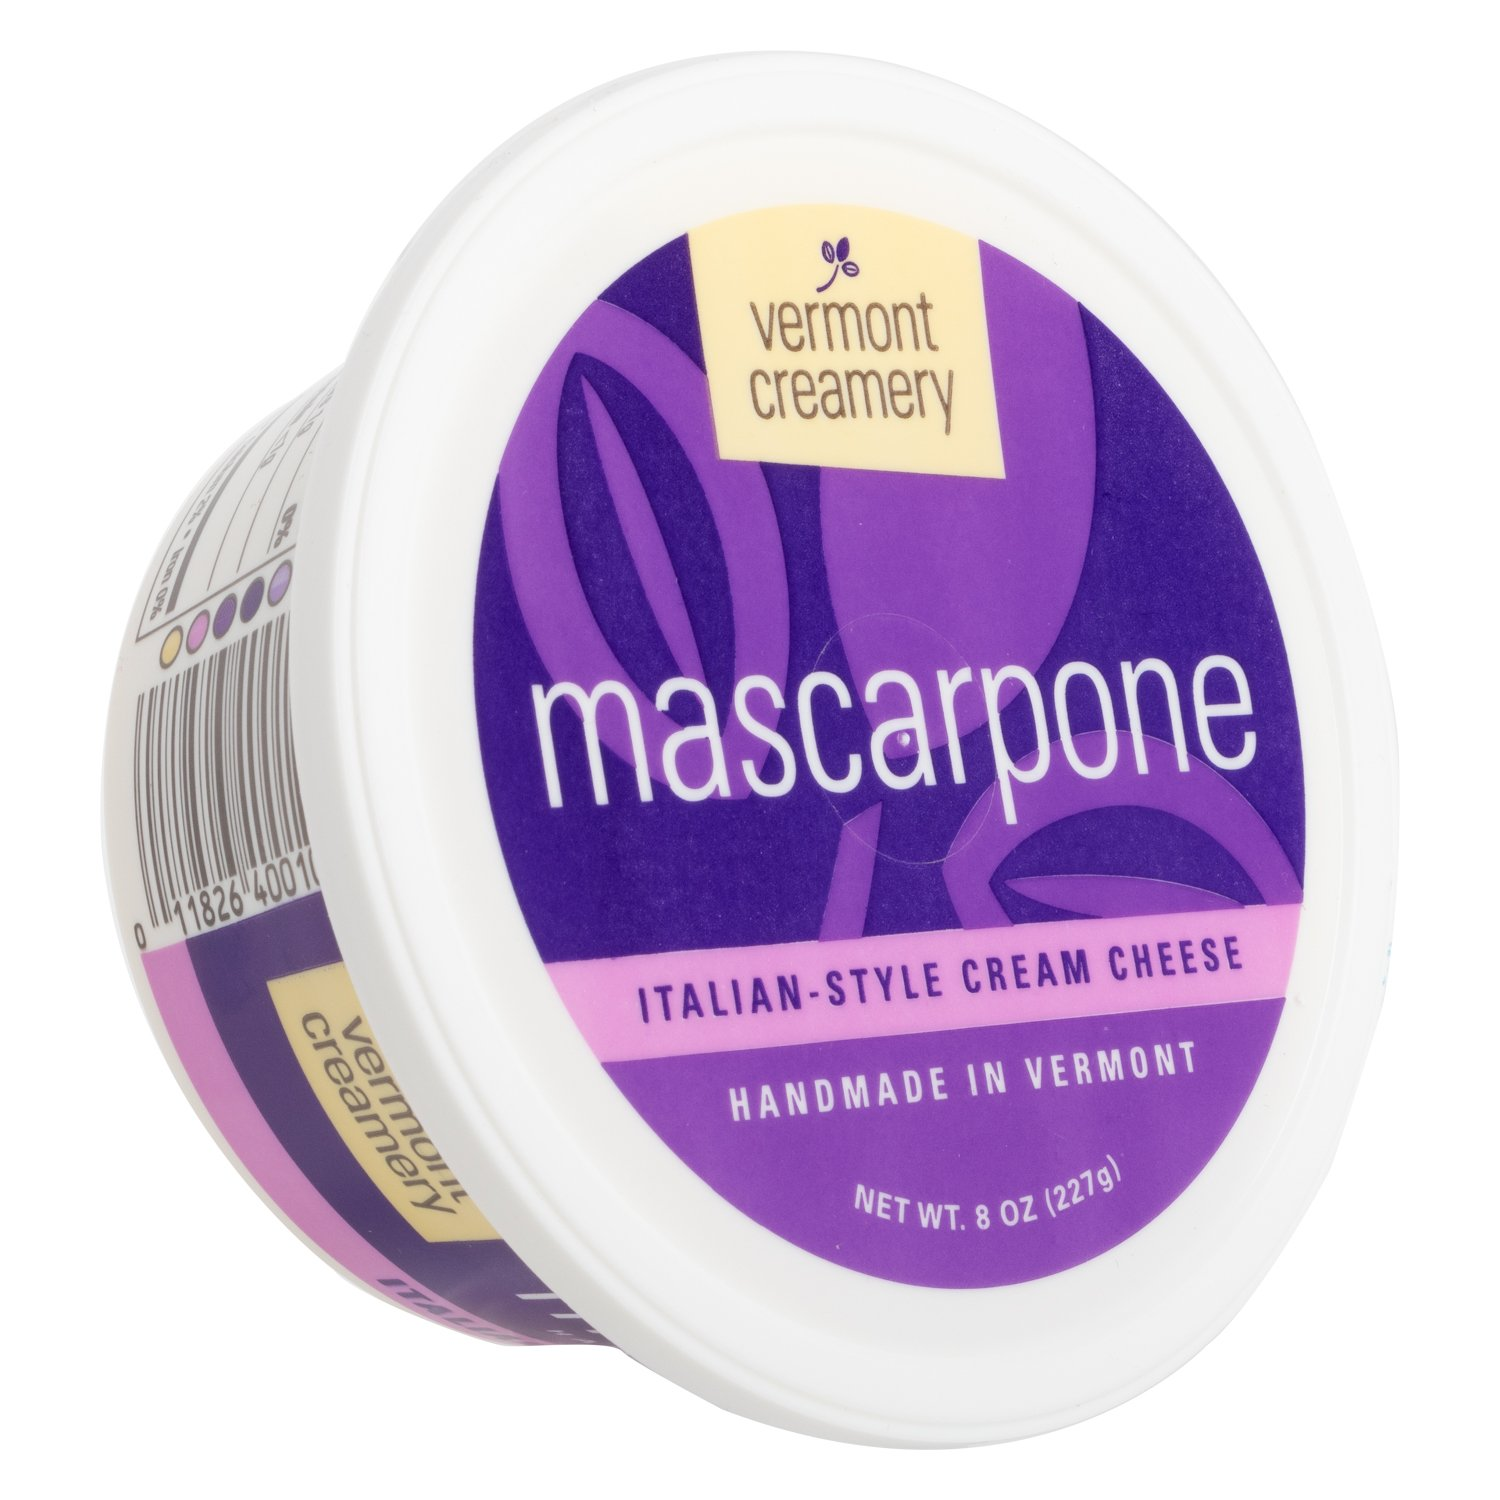 Vermont Creamery, Mascarpone Italian Style Cream Cheese, 8 oz: Amazon.com: Grocery & Gourmet Food